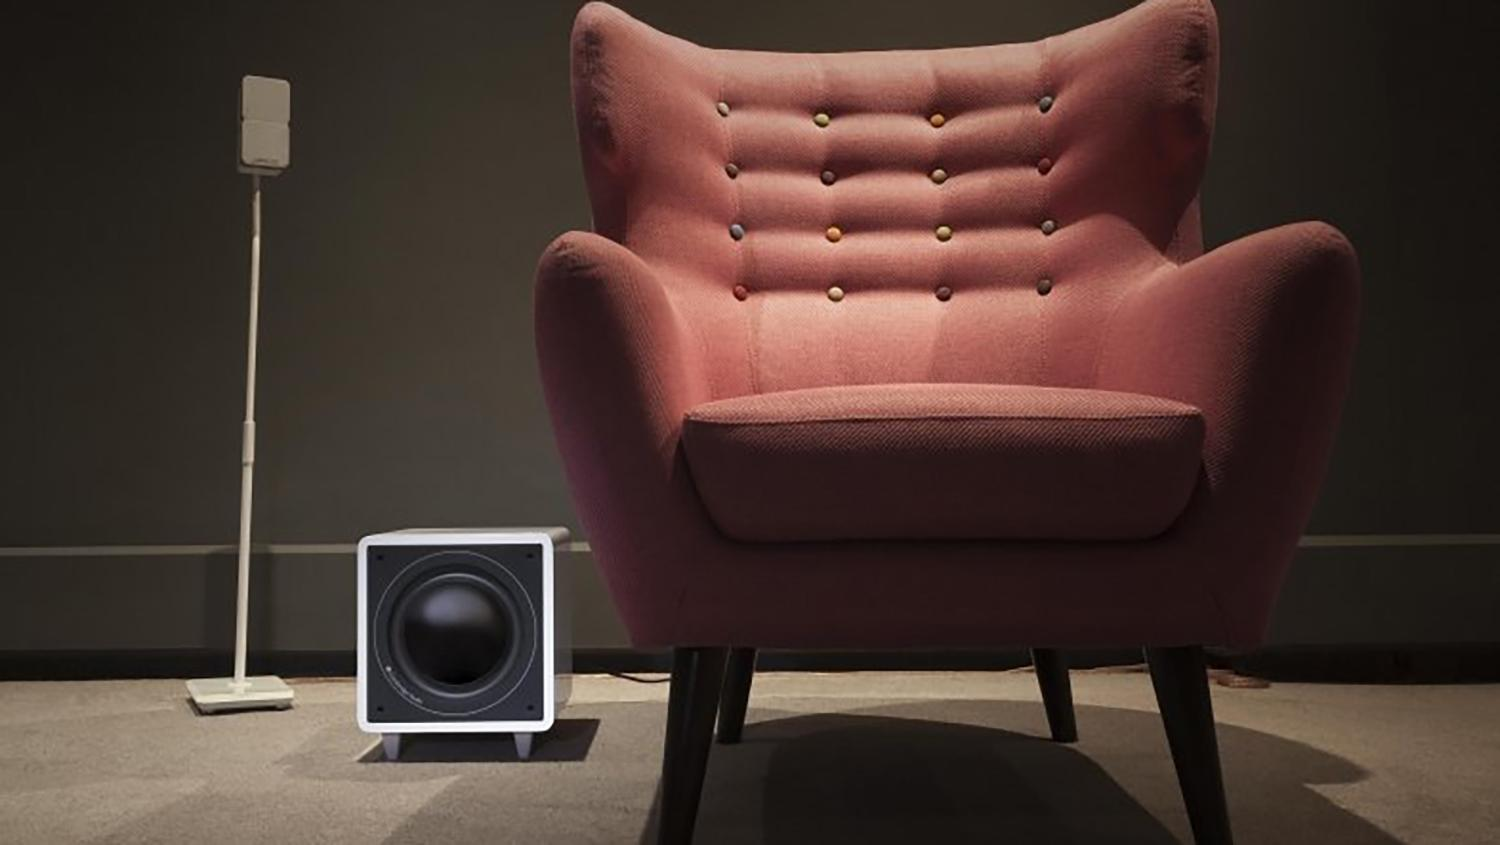 Minx X301 300W subwoofer next to red arm chair